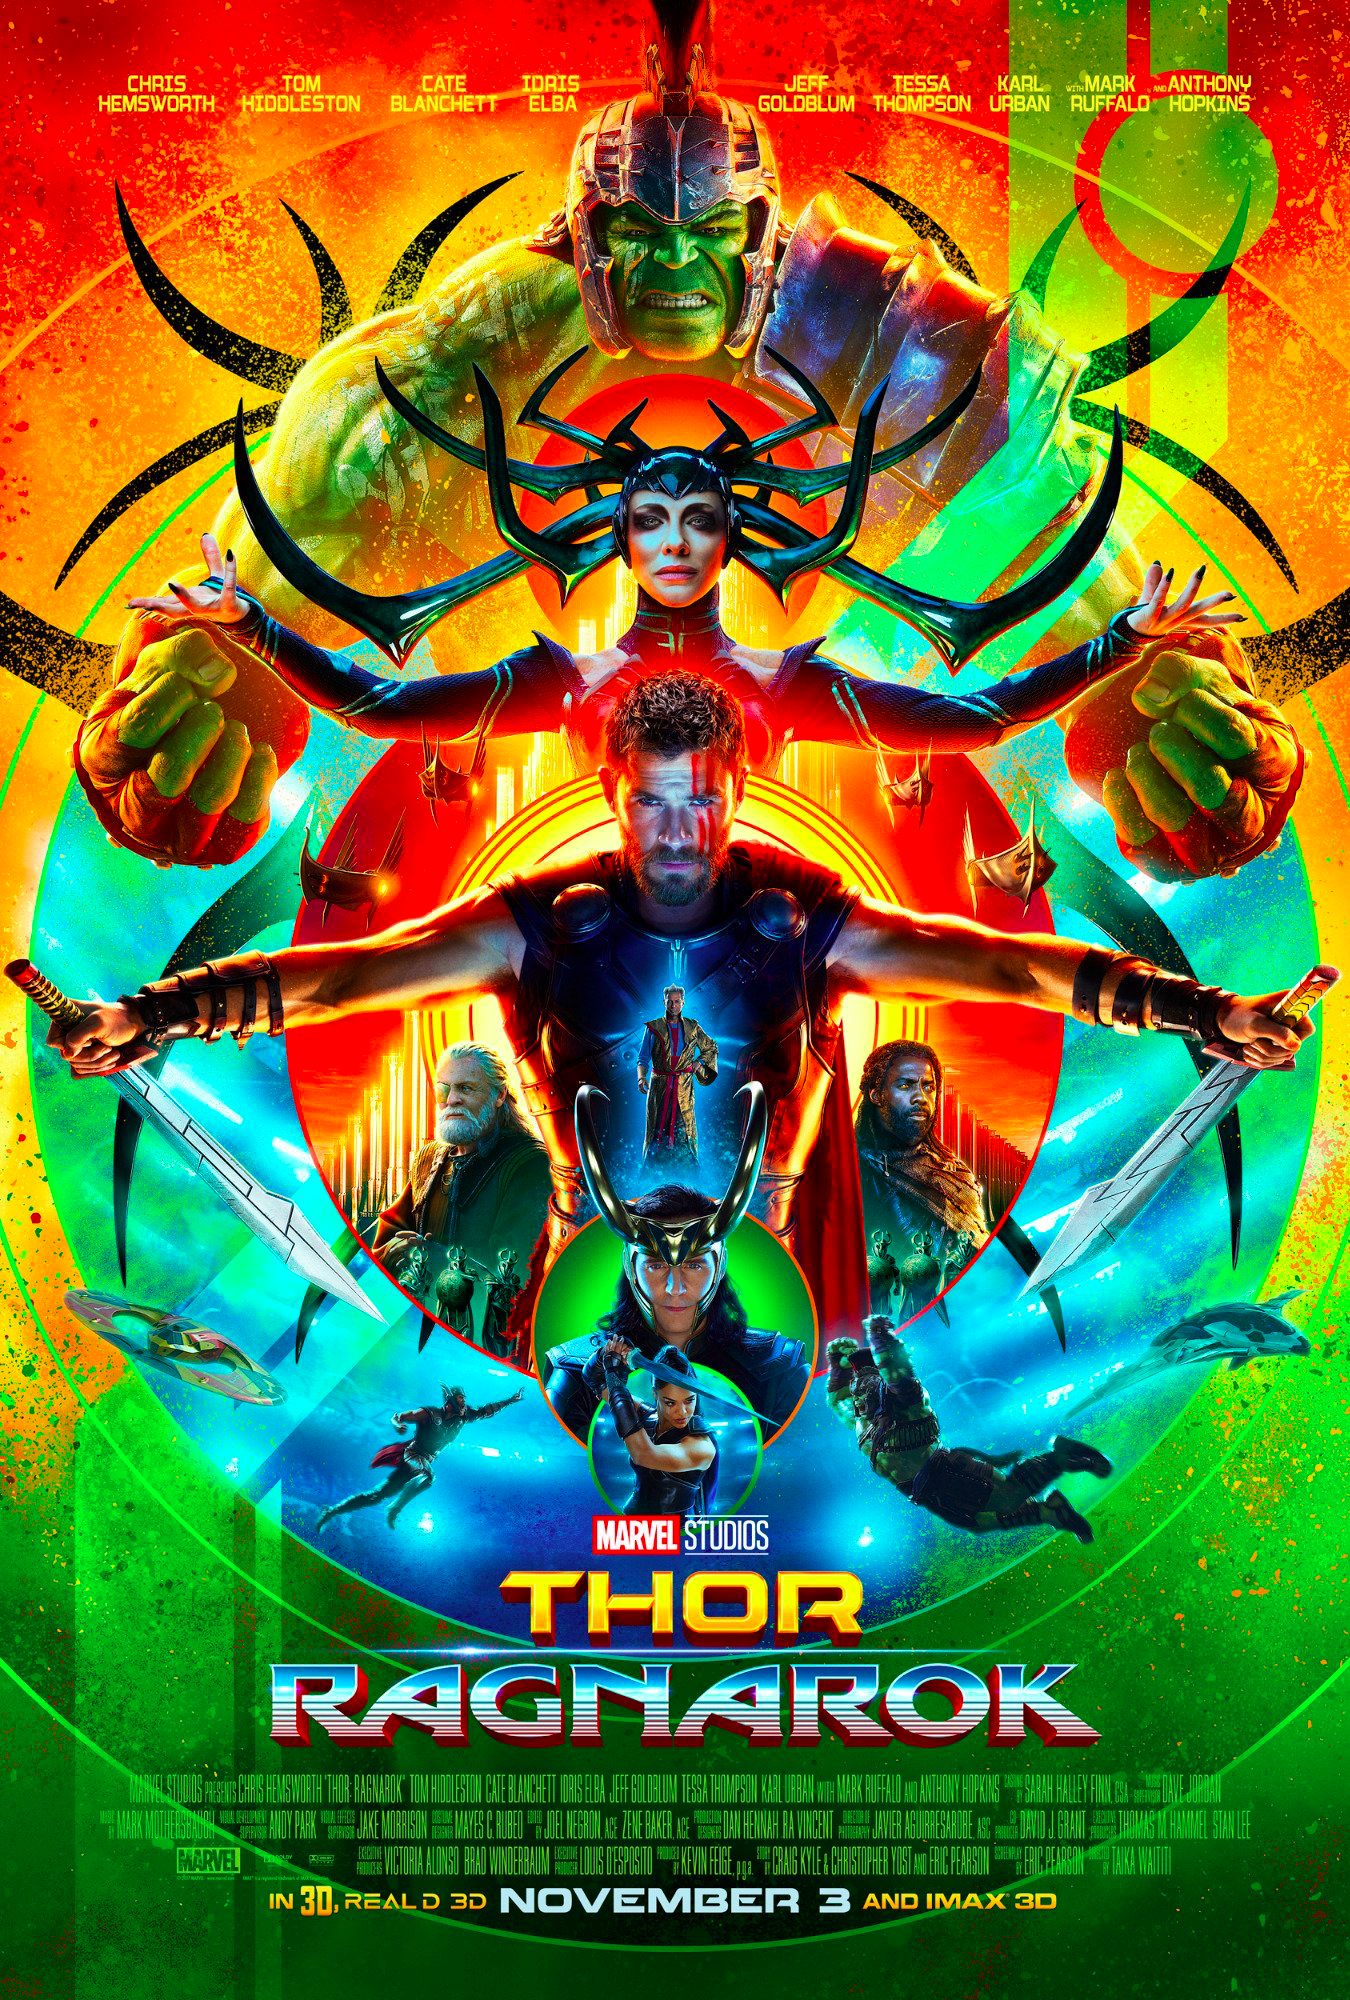 #8 - Thor: Ragnarok - What a remarkable tonal shift. I laughed. I had fun. I threw up the devil horns to Immigrant's Song . . . both times. There were some dumb things, and it broke continuity. But man, it was pure fun. -